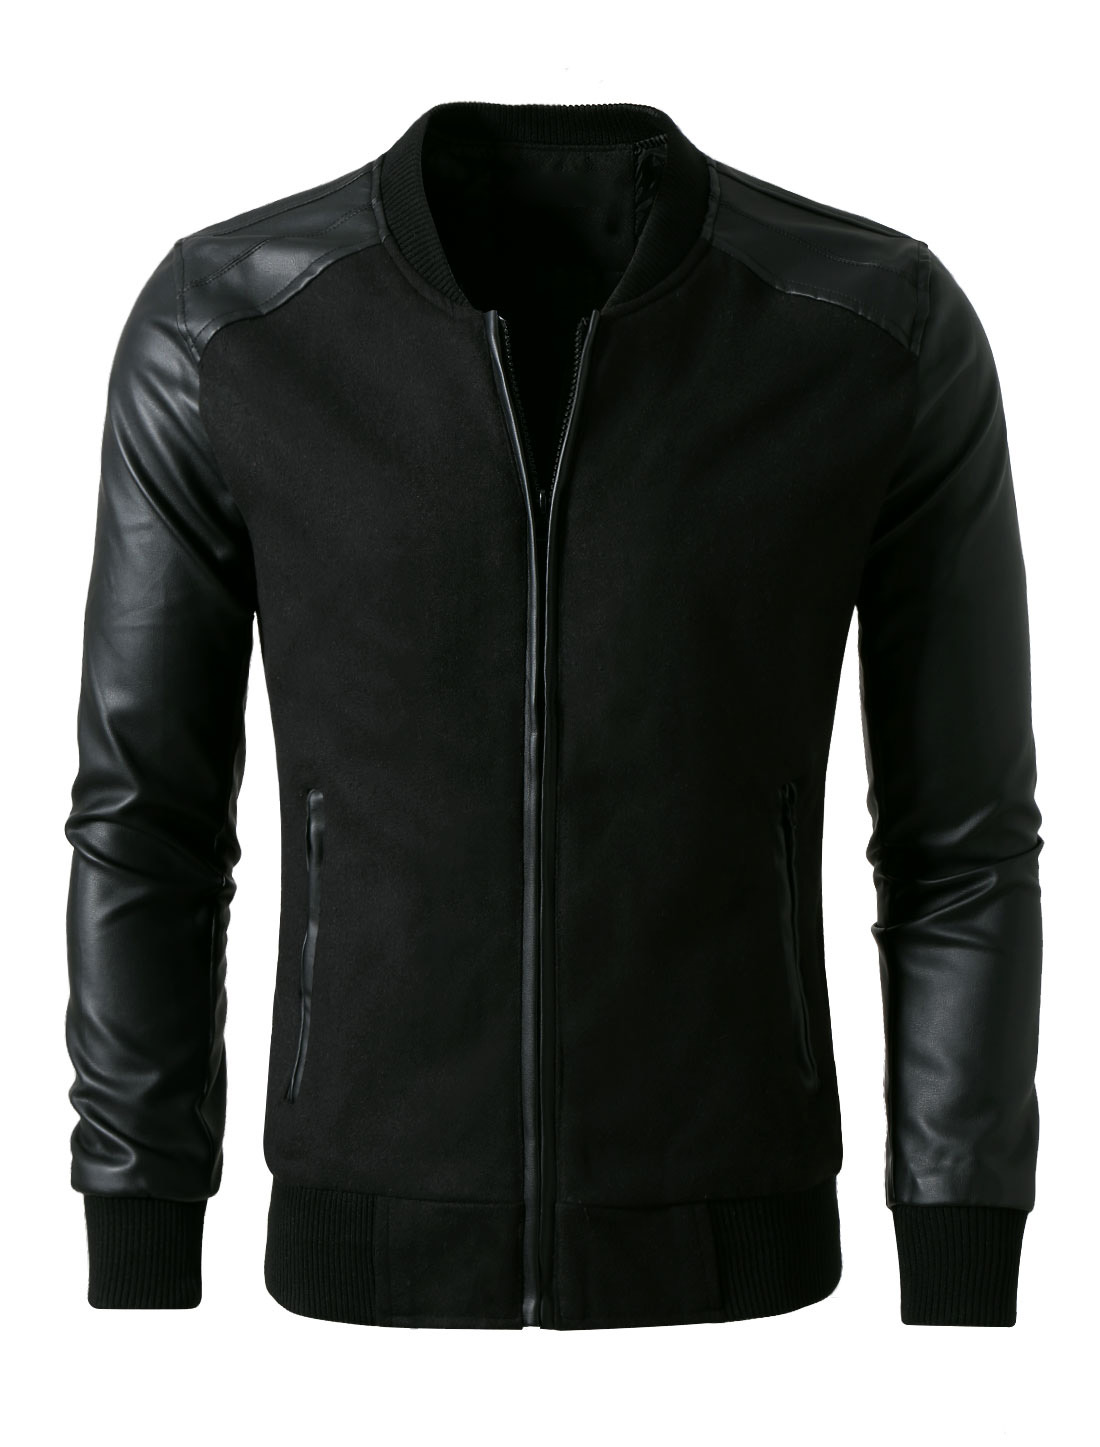 Men Fashion Rib Knit Collar Leather Splice Lining Jacket S